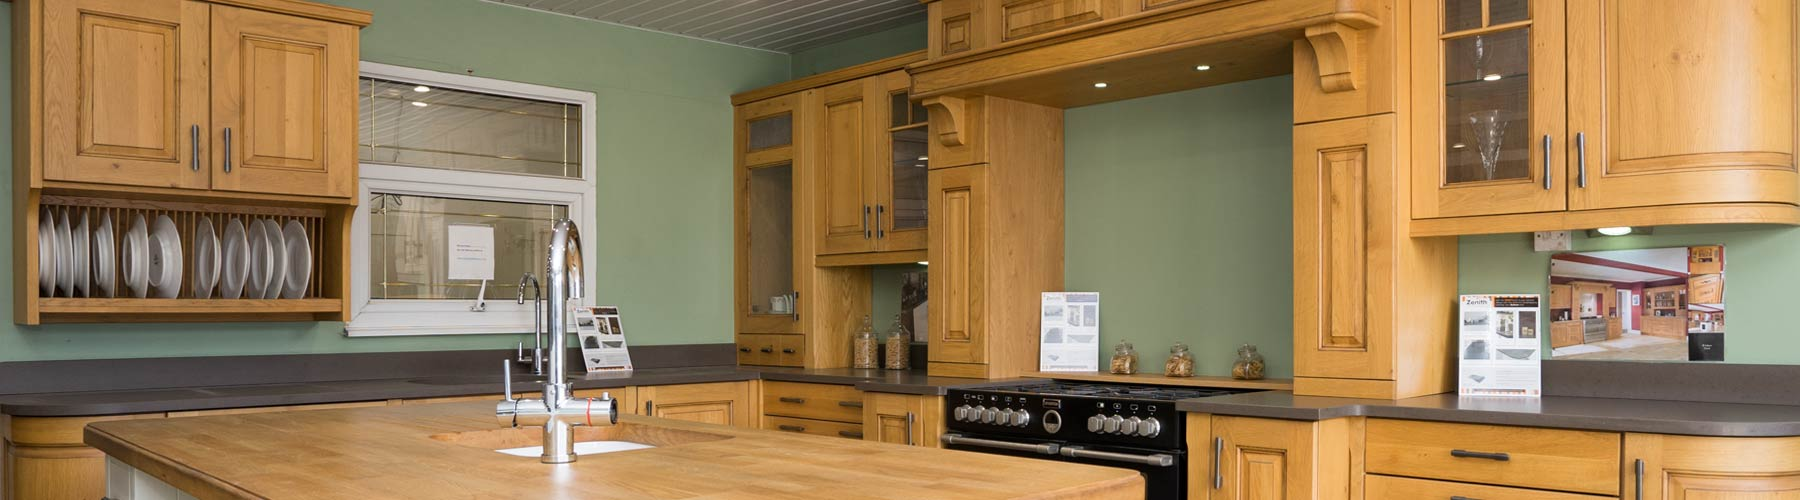 Timber kitchen on display in our showroom on the Kirkby industrial estate.e